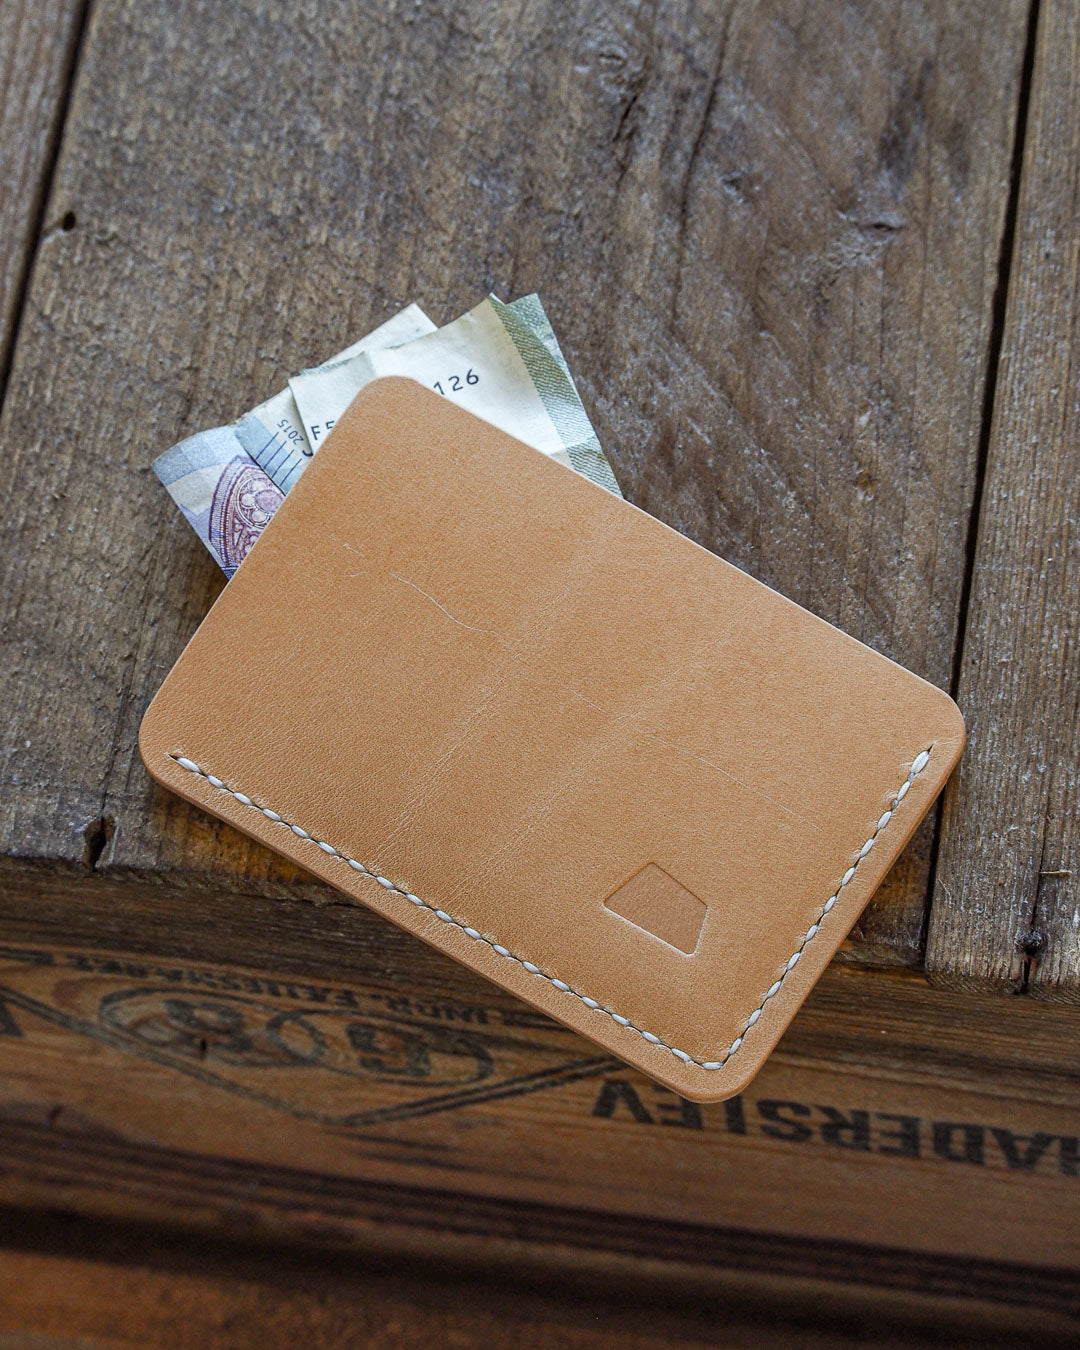 Luava handcrafted handmade leather wallet card holder cardholder maremma nude back in use